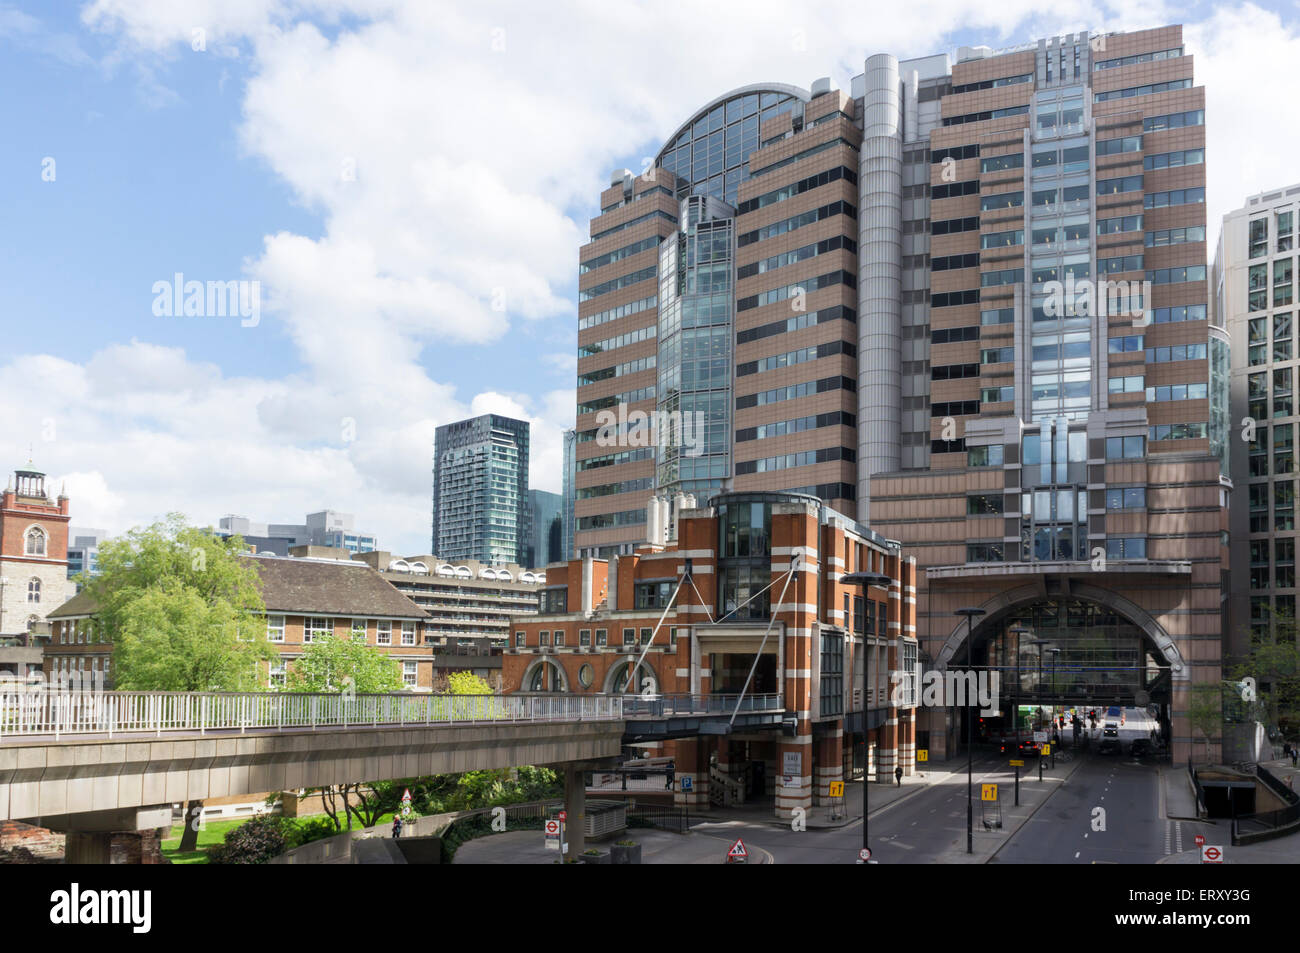 125 London Wall or Alban Gate office development designed by Sir Terry Farrell. - Stock Image